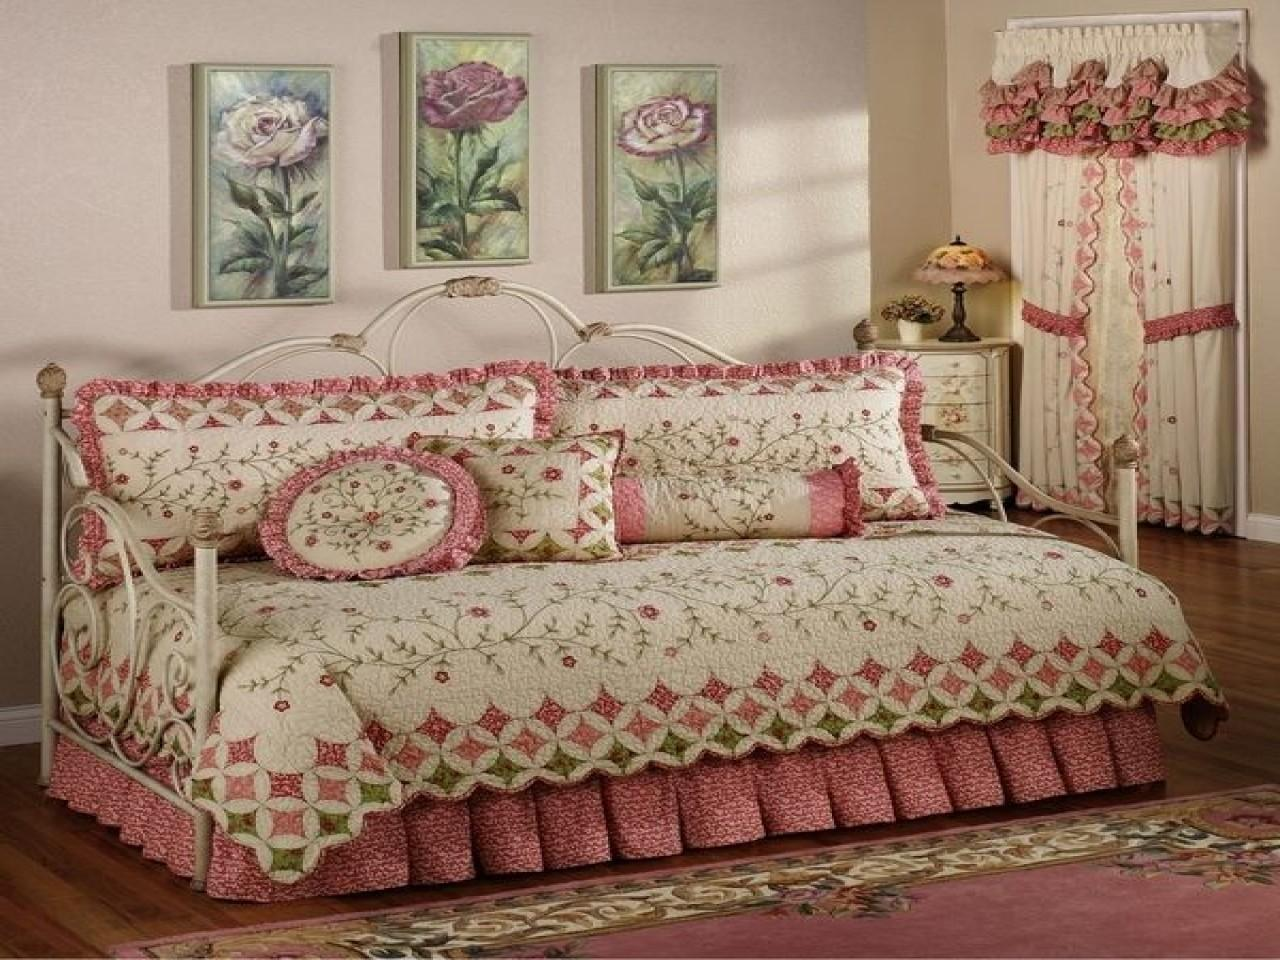 Stylish Daybed Shabby Chic Bedding Sets